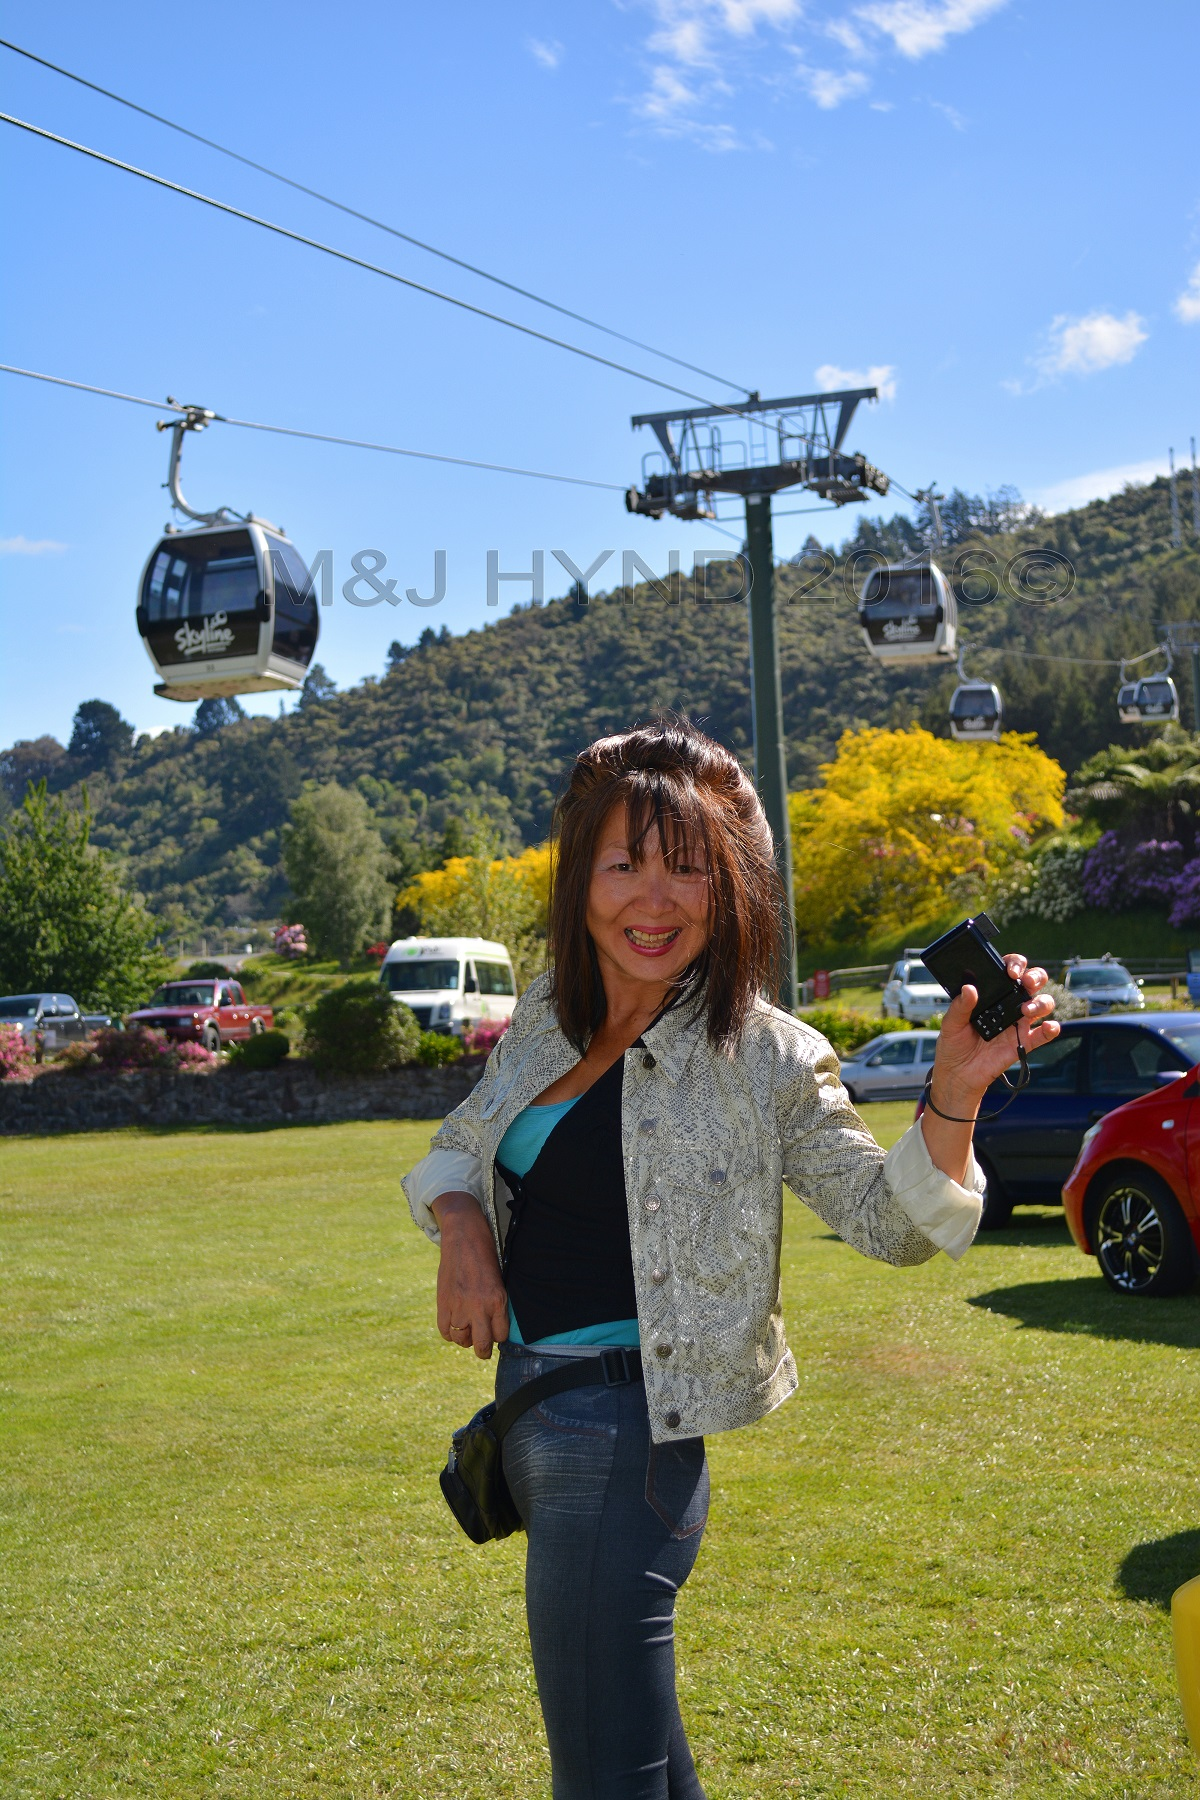 Skyline gondola and base station, Rotorua, NZ